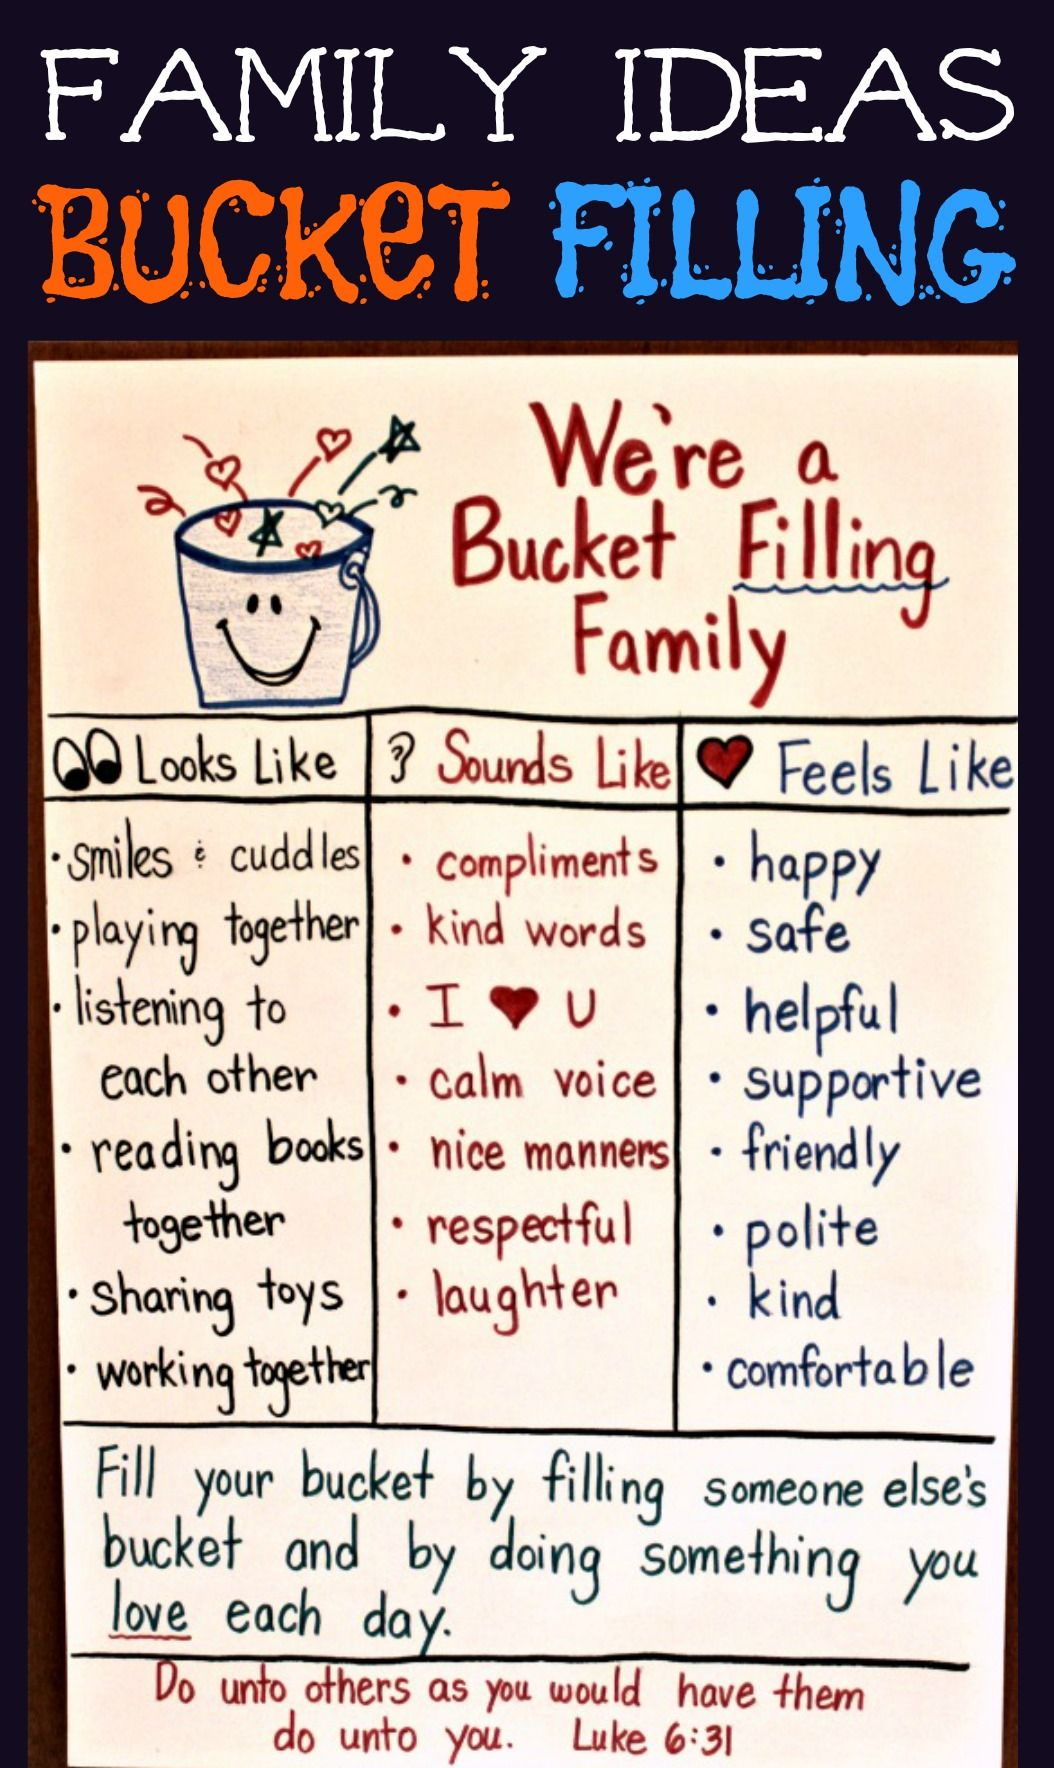 How To Become A Bucket Filling Family